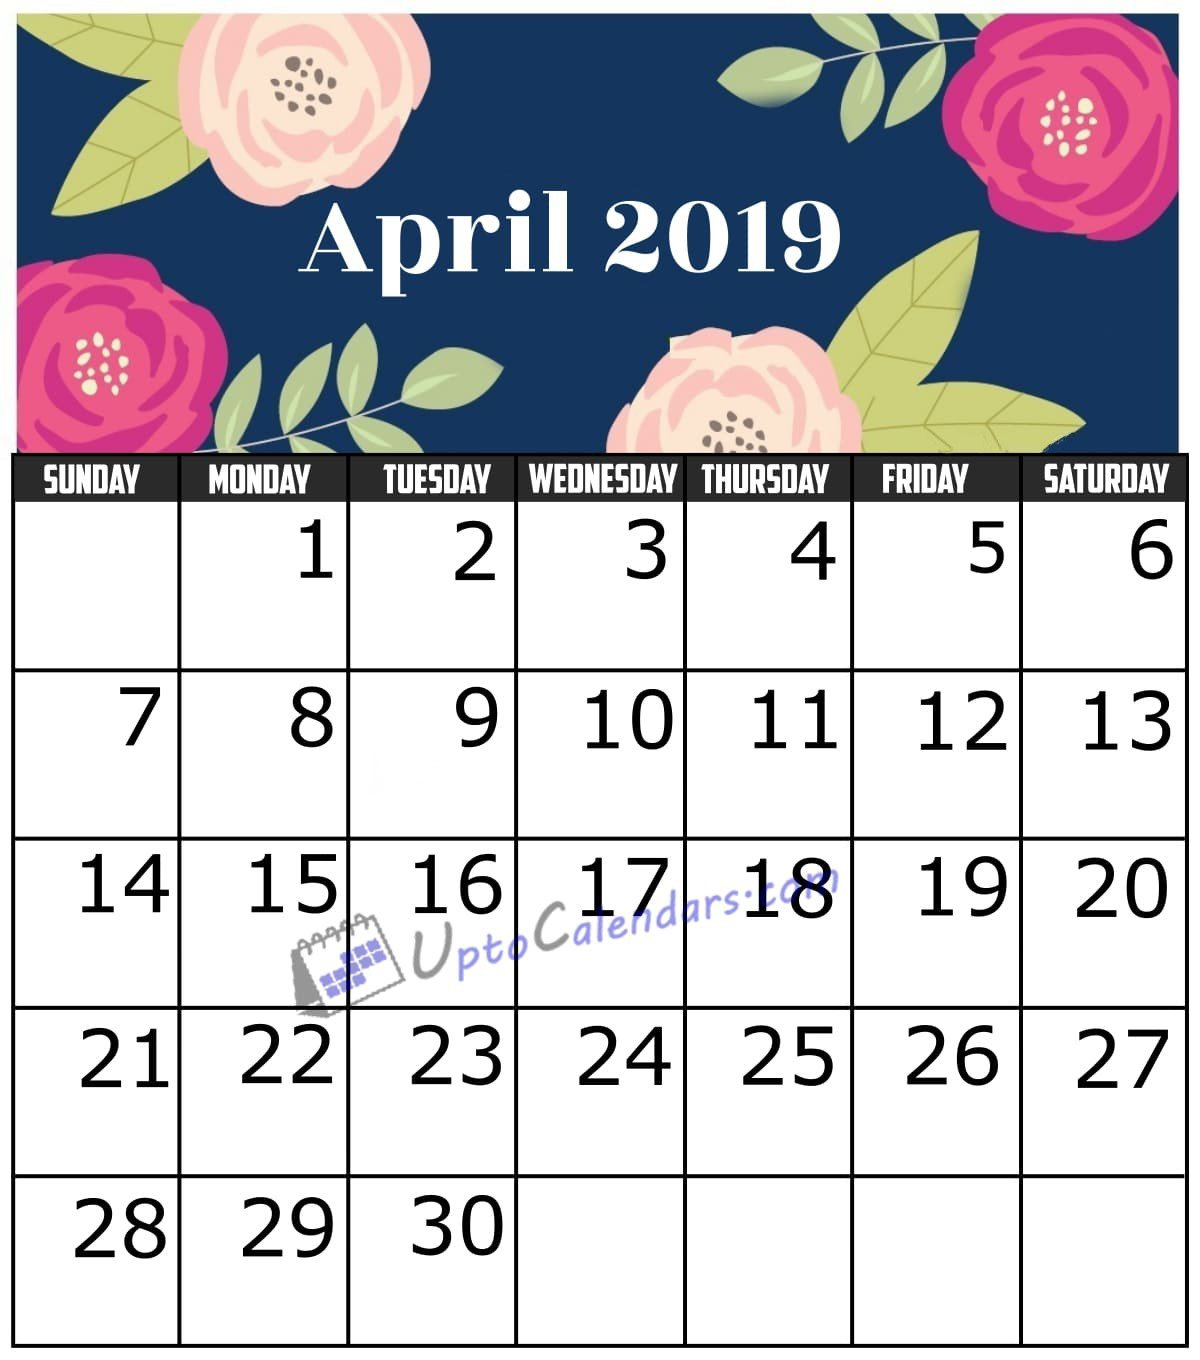 April 2019 Calendar Printable Template With Holidays Pdf Word Excel April 7 2019 Calendar